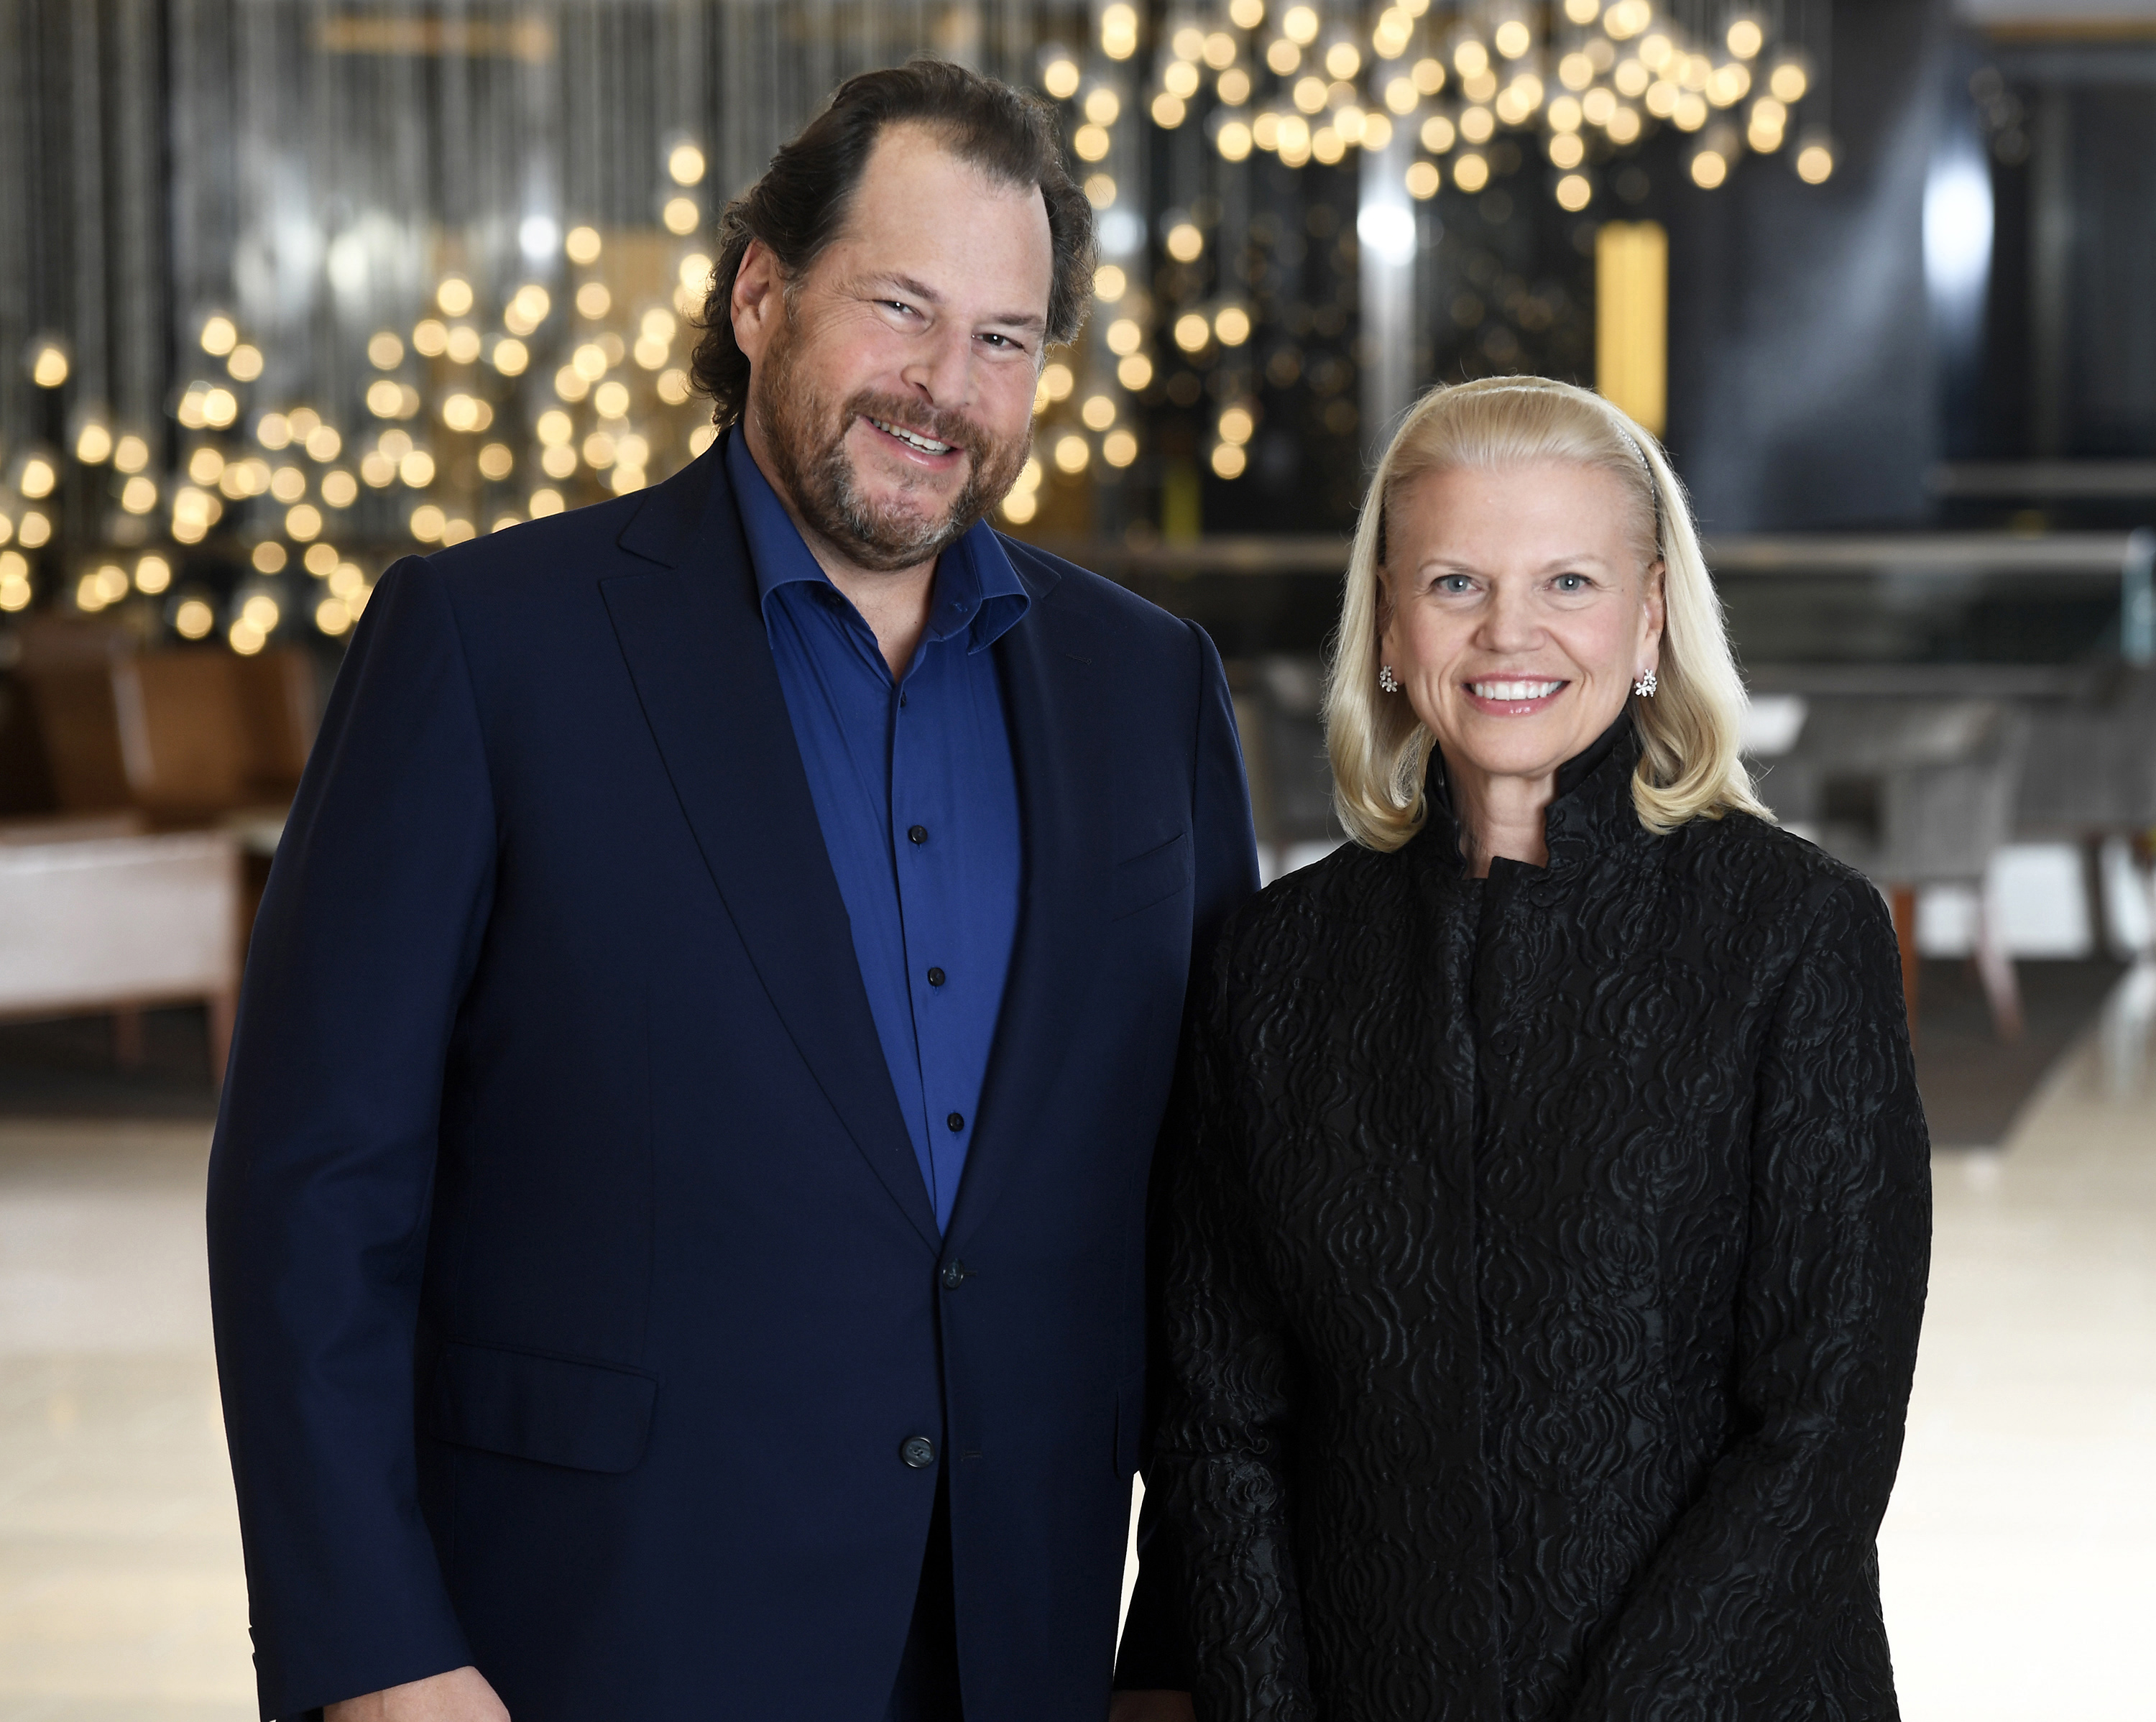 Salesforce CEO Marc Benioff and IBM CEO Ginni Rometty.